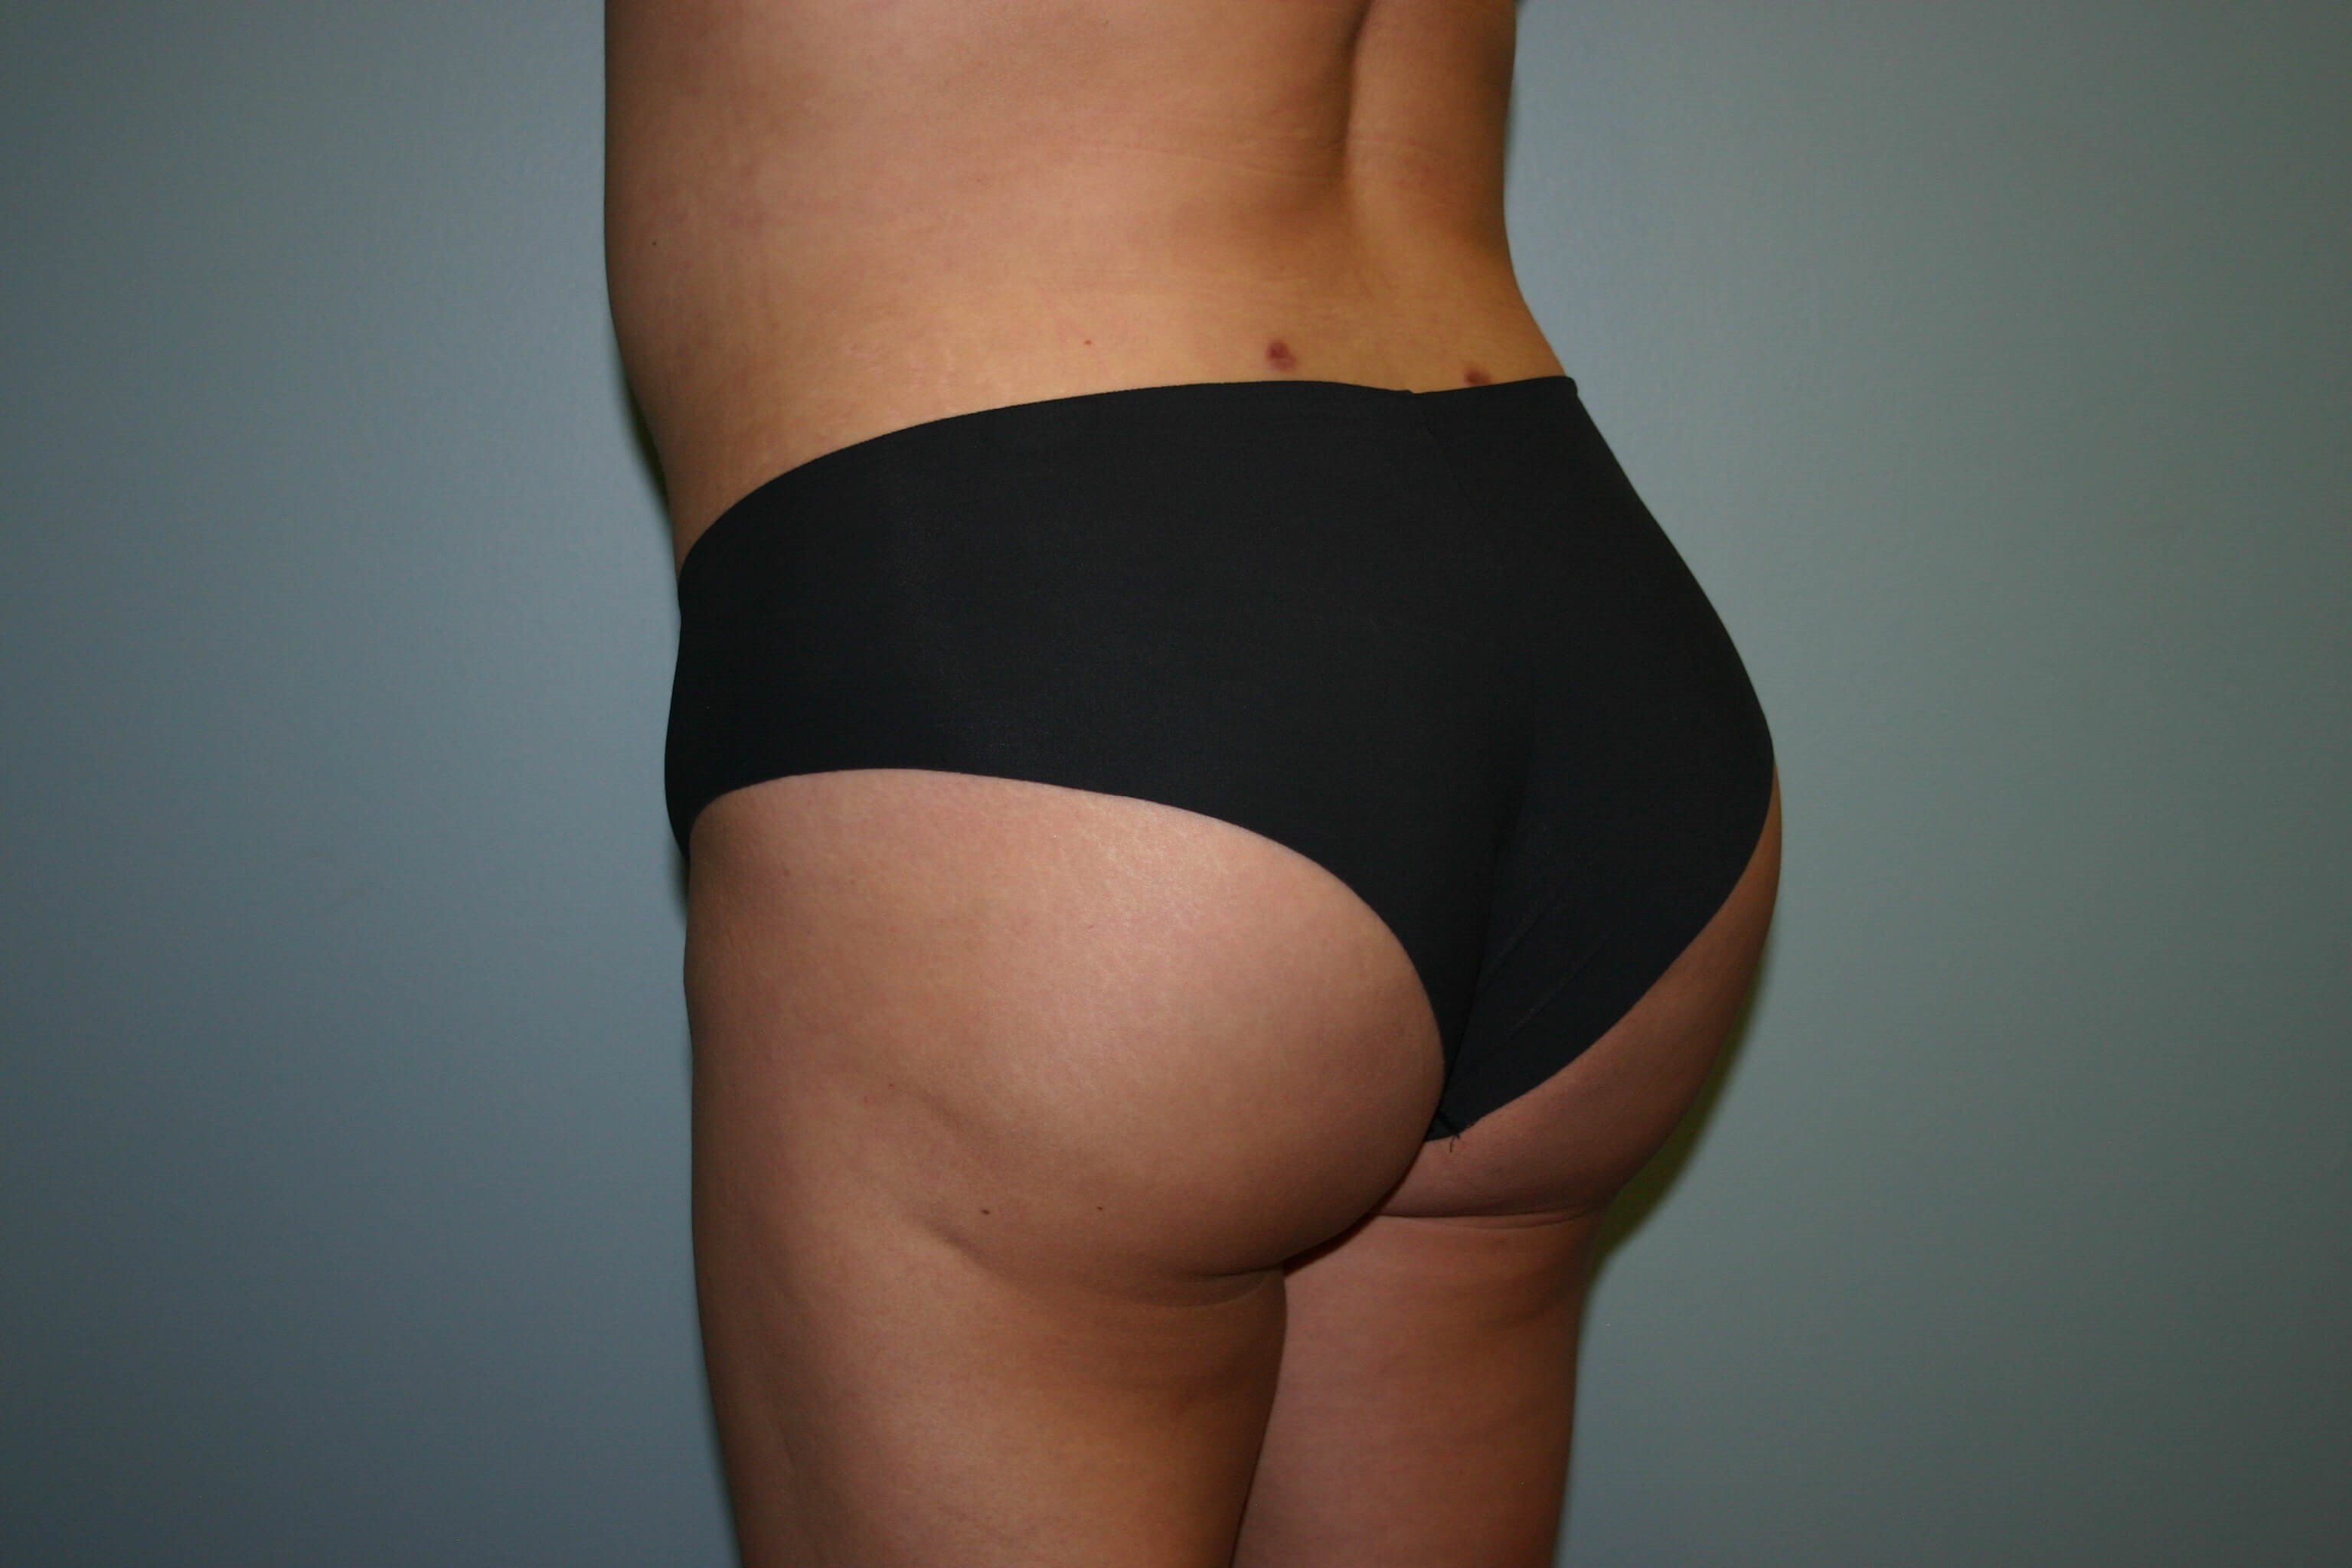 4 Months Post-op Butt Aug After